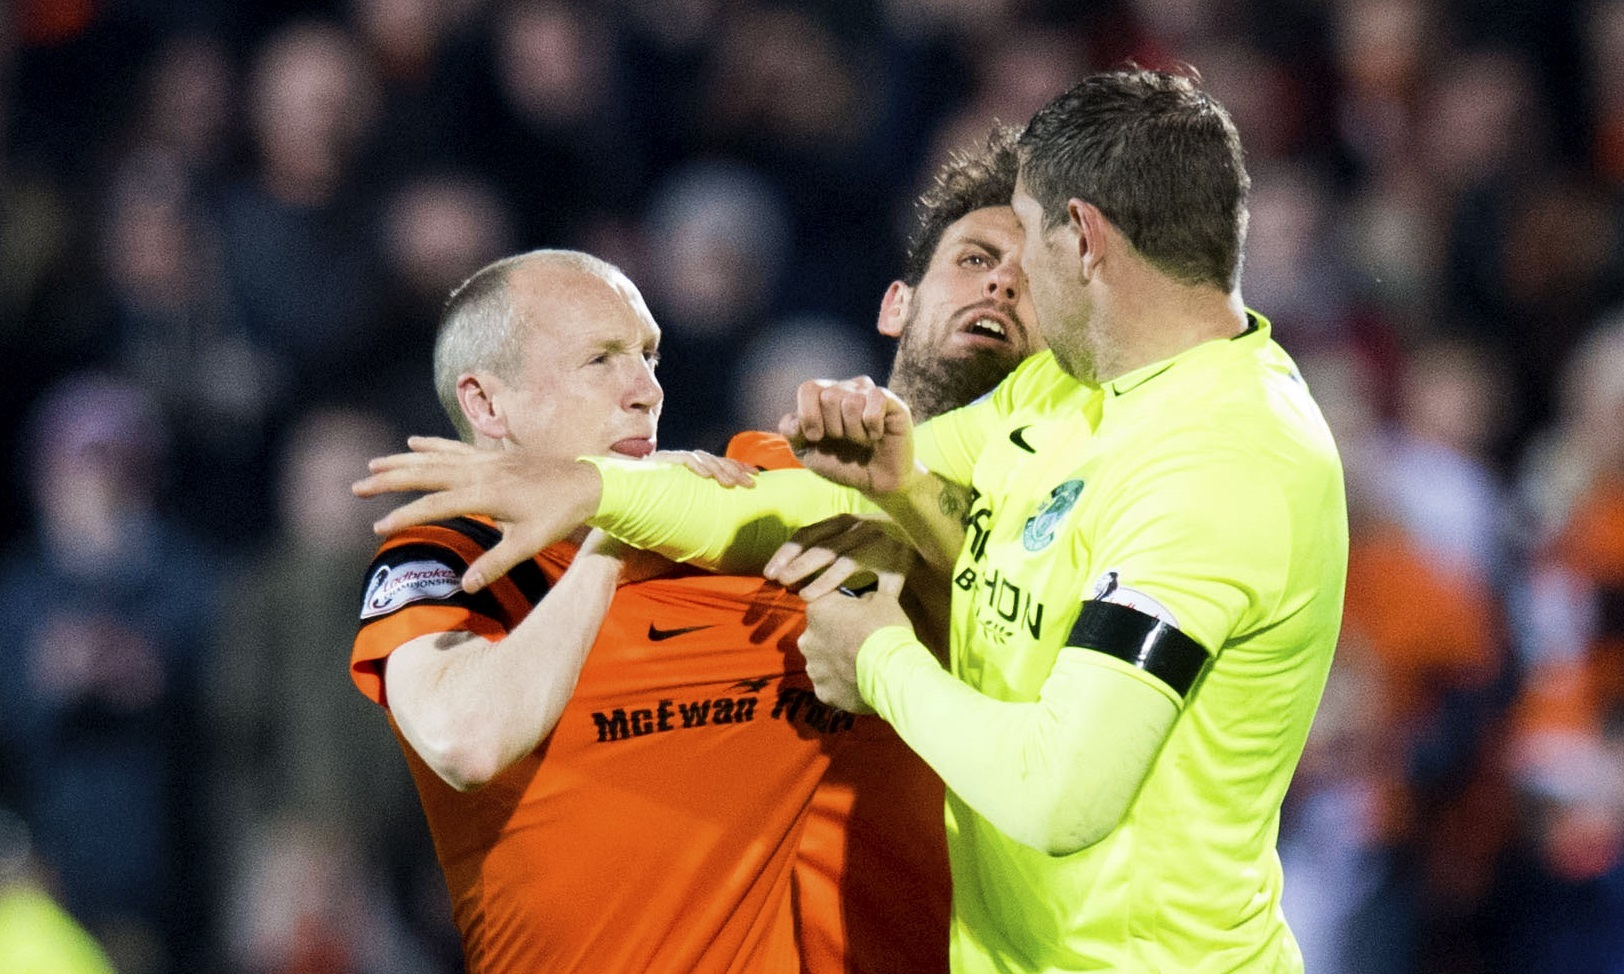 Willo Flood clashes with Hibs Grant Holt the last time the two sides met at the start of December.